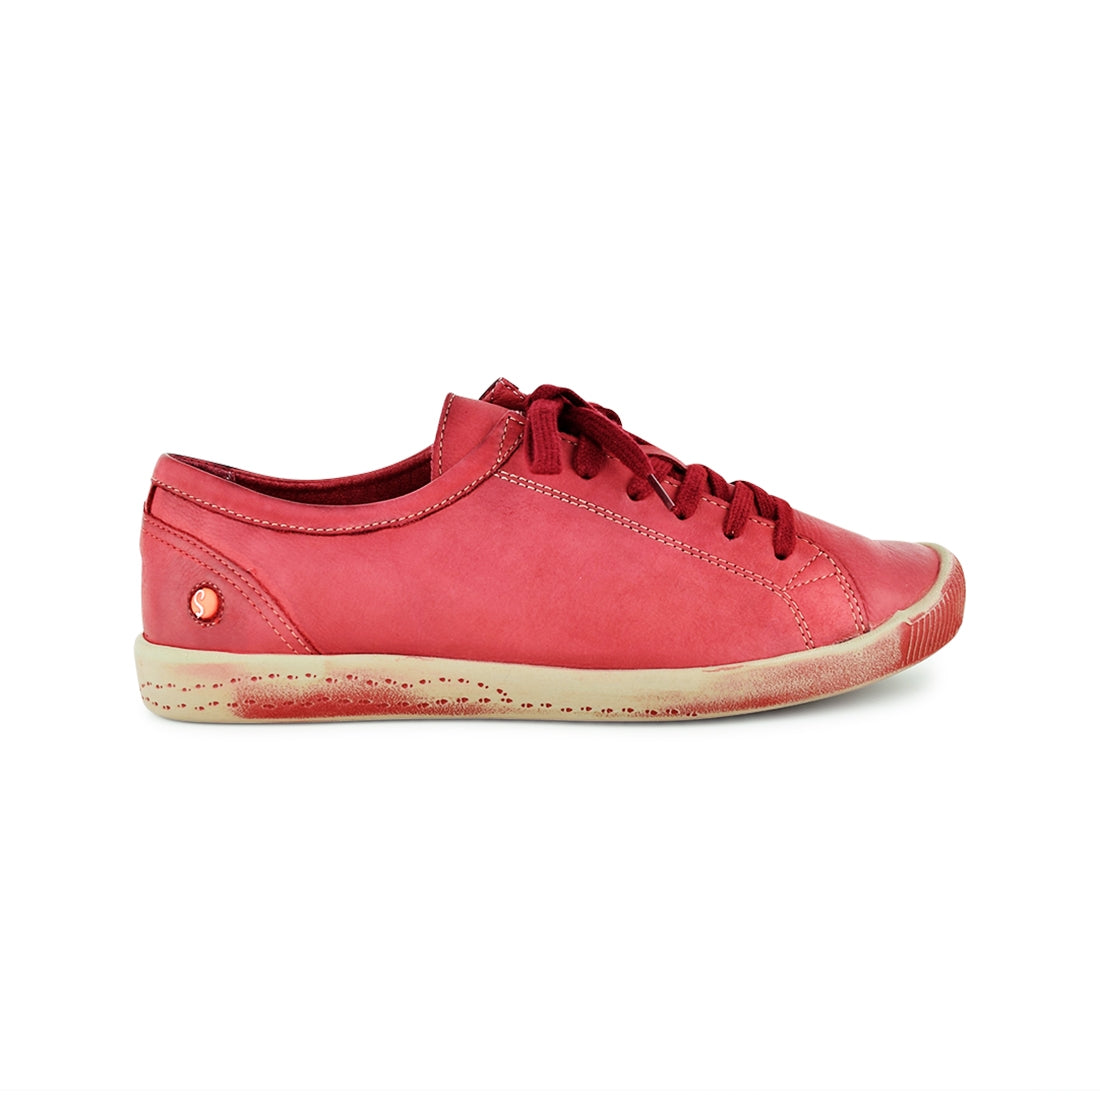 SMOOTH3 - Softinos Lace Up Red Rub